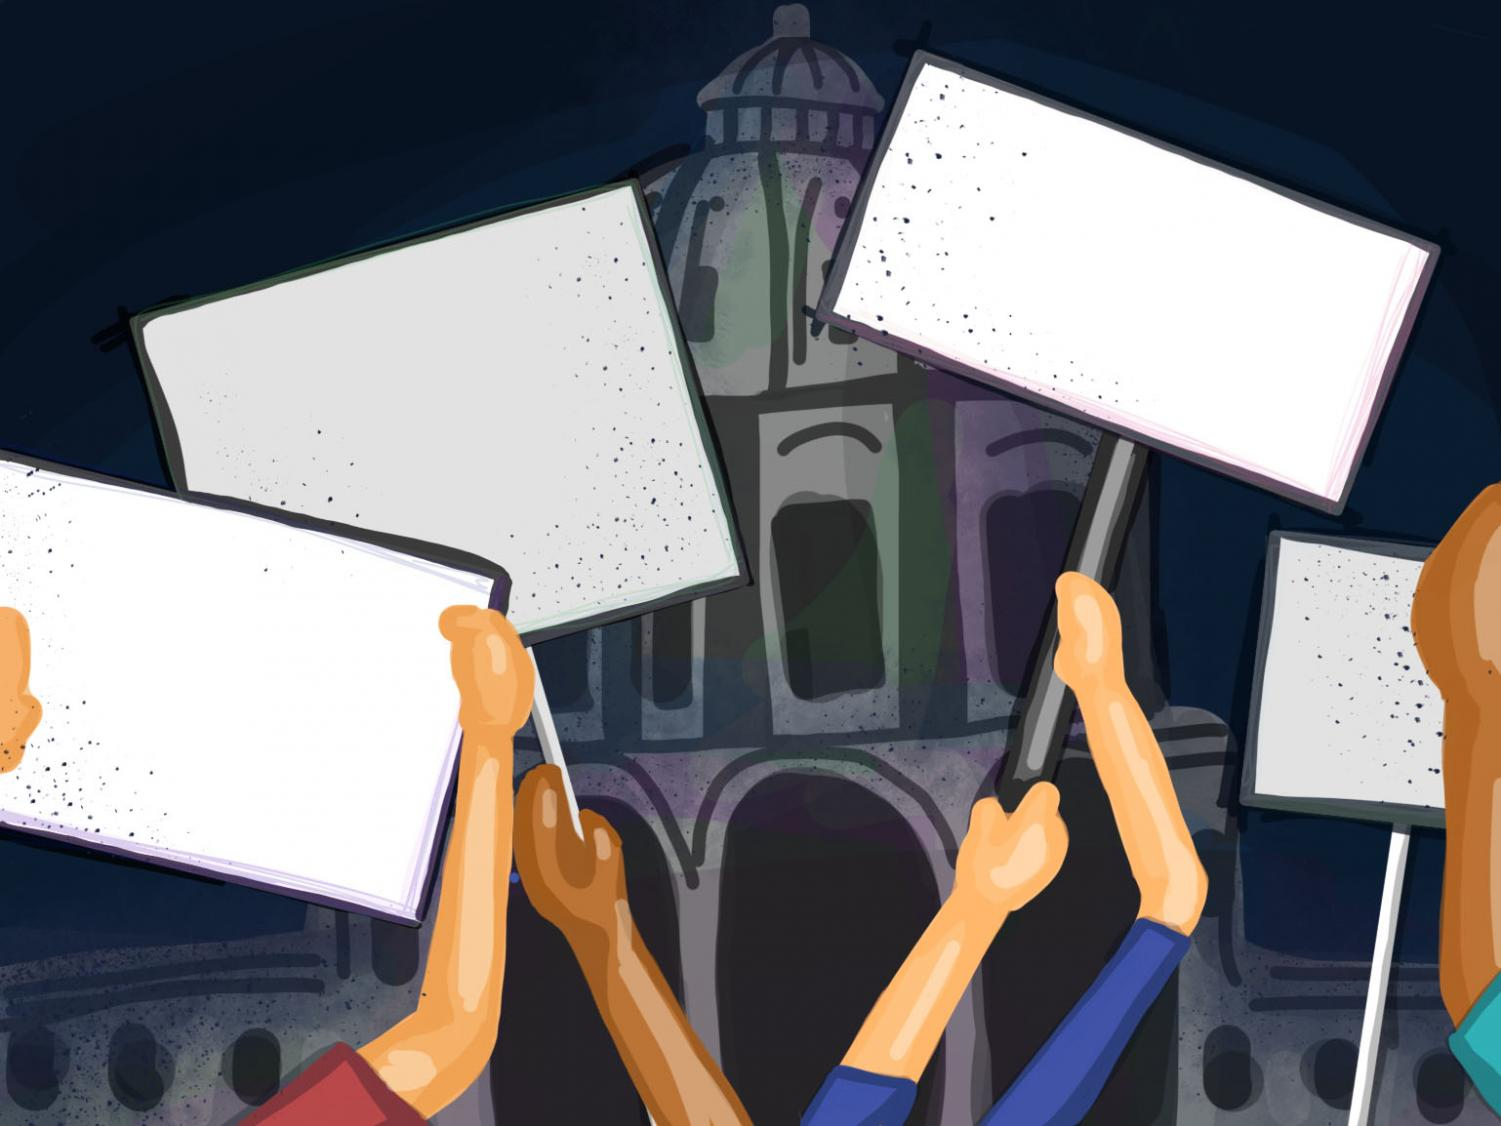 Art by Maggie Klaers. India's new controversial law concerning immigration has caused protests in cities across India and the United States, including St. Paul.